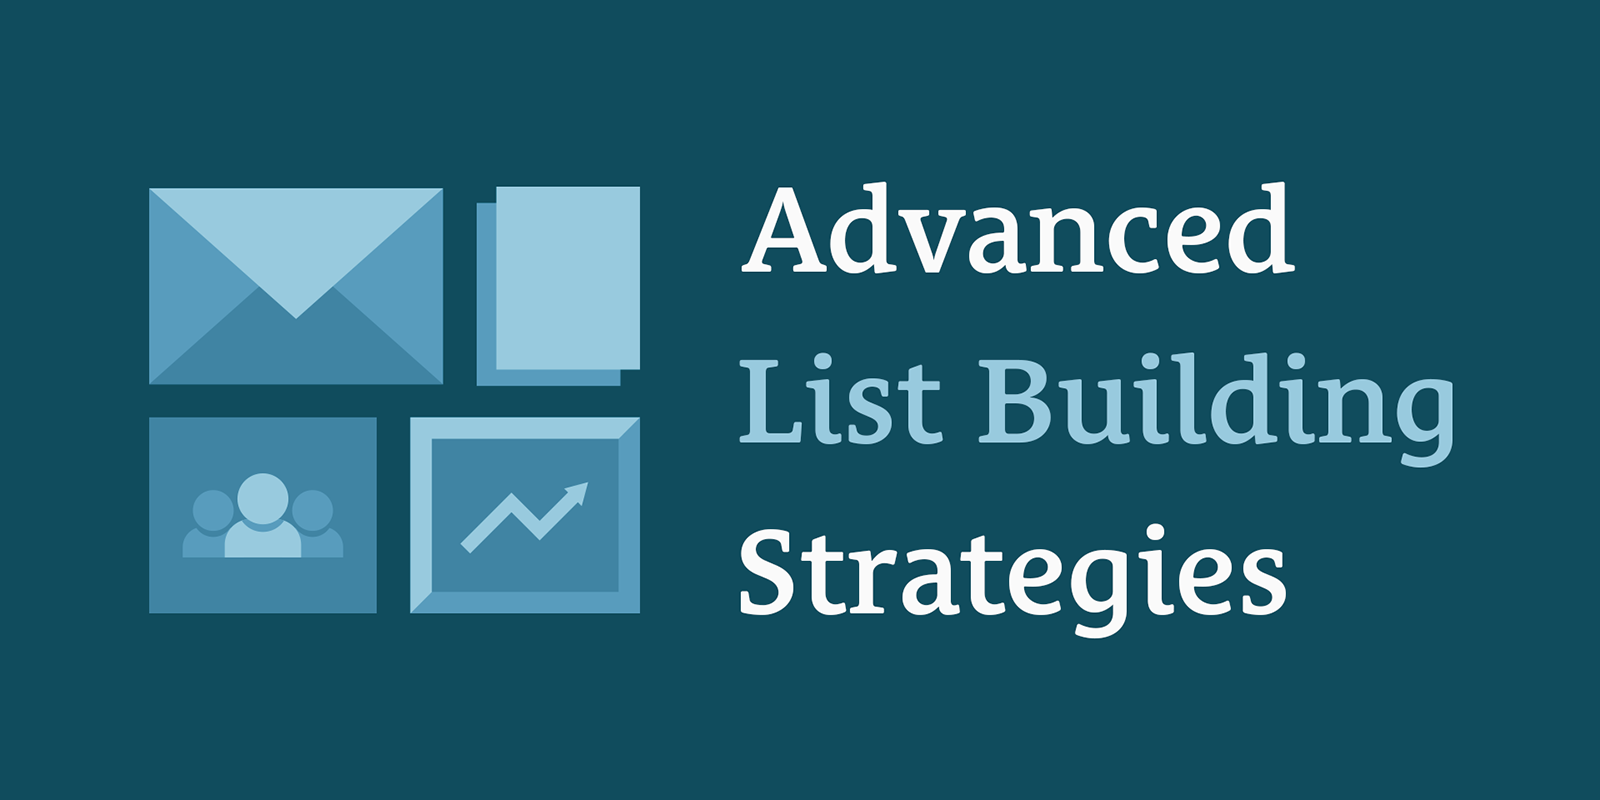 Advanced List Building Strategies